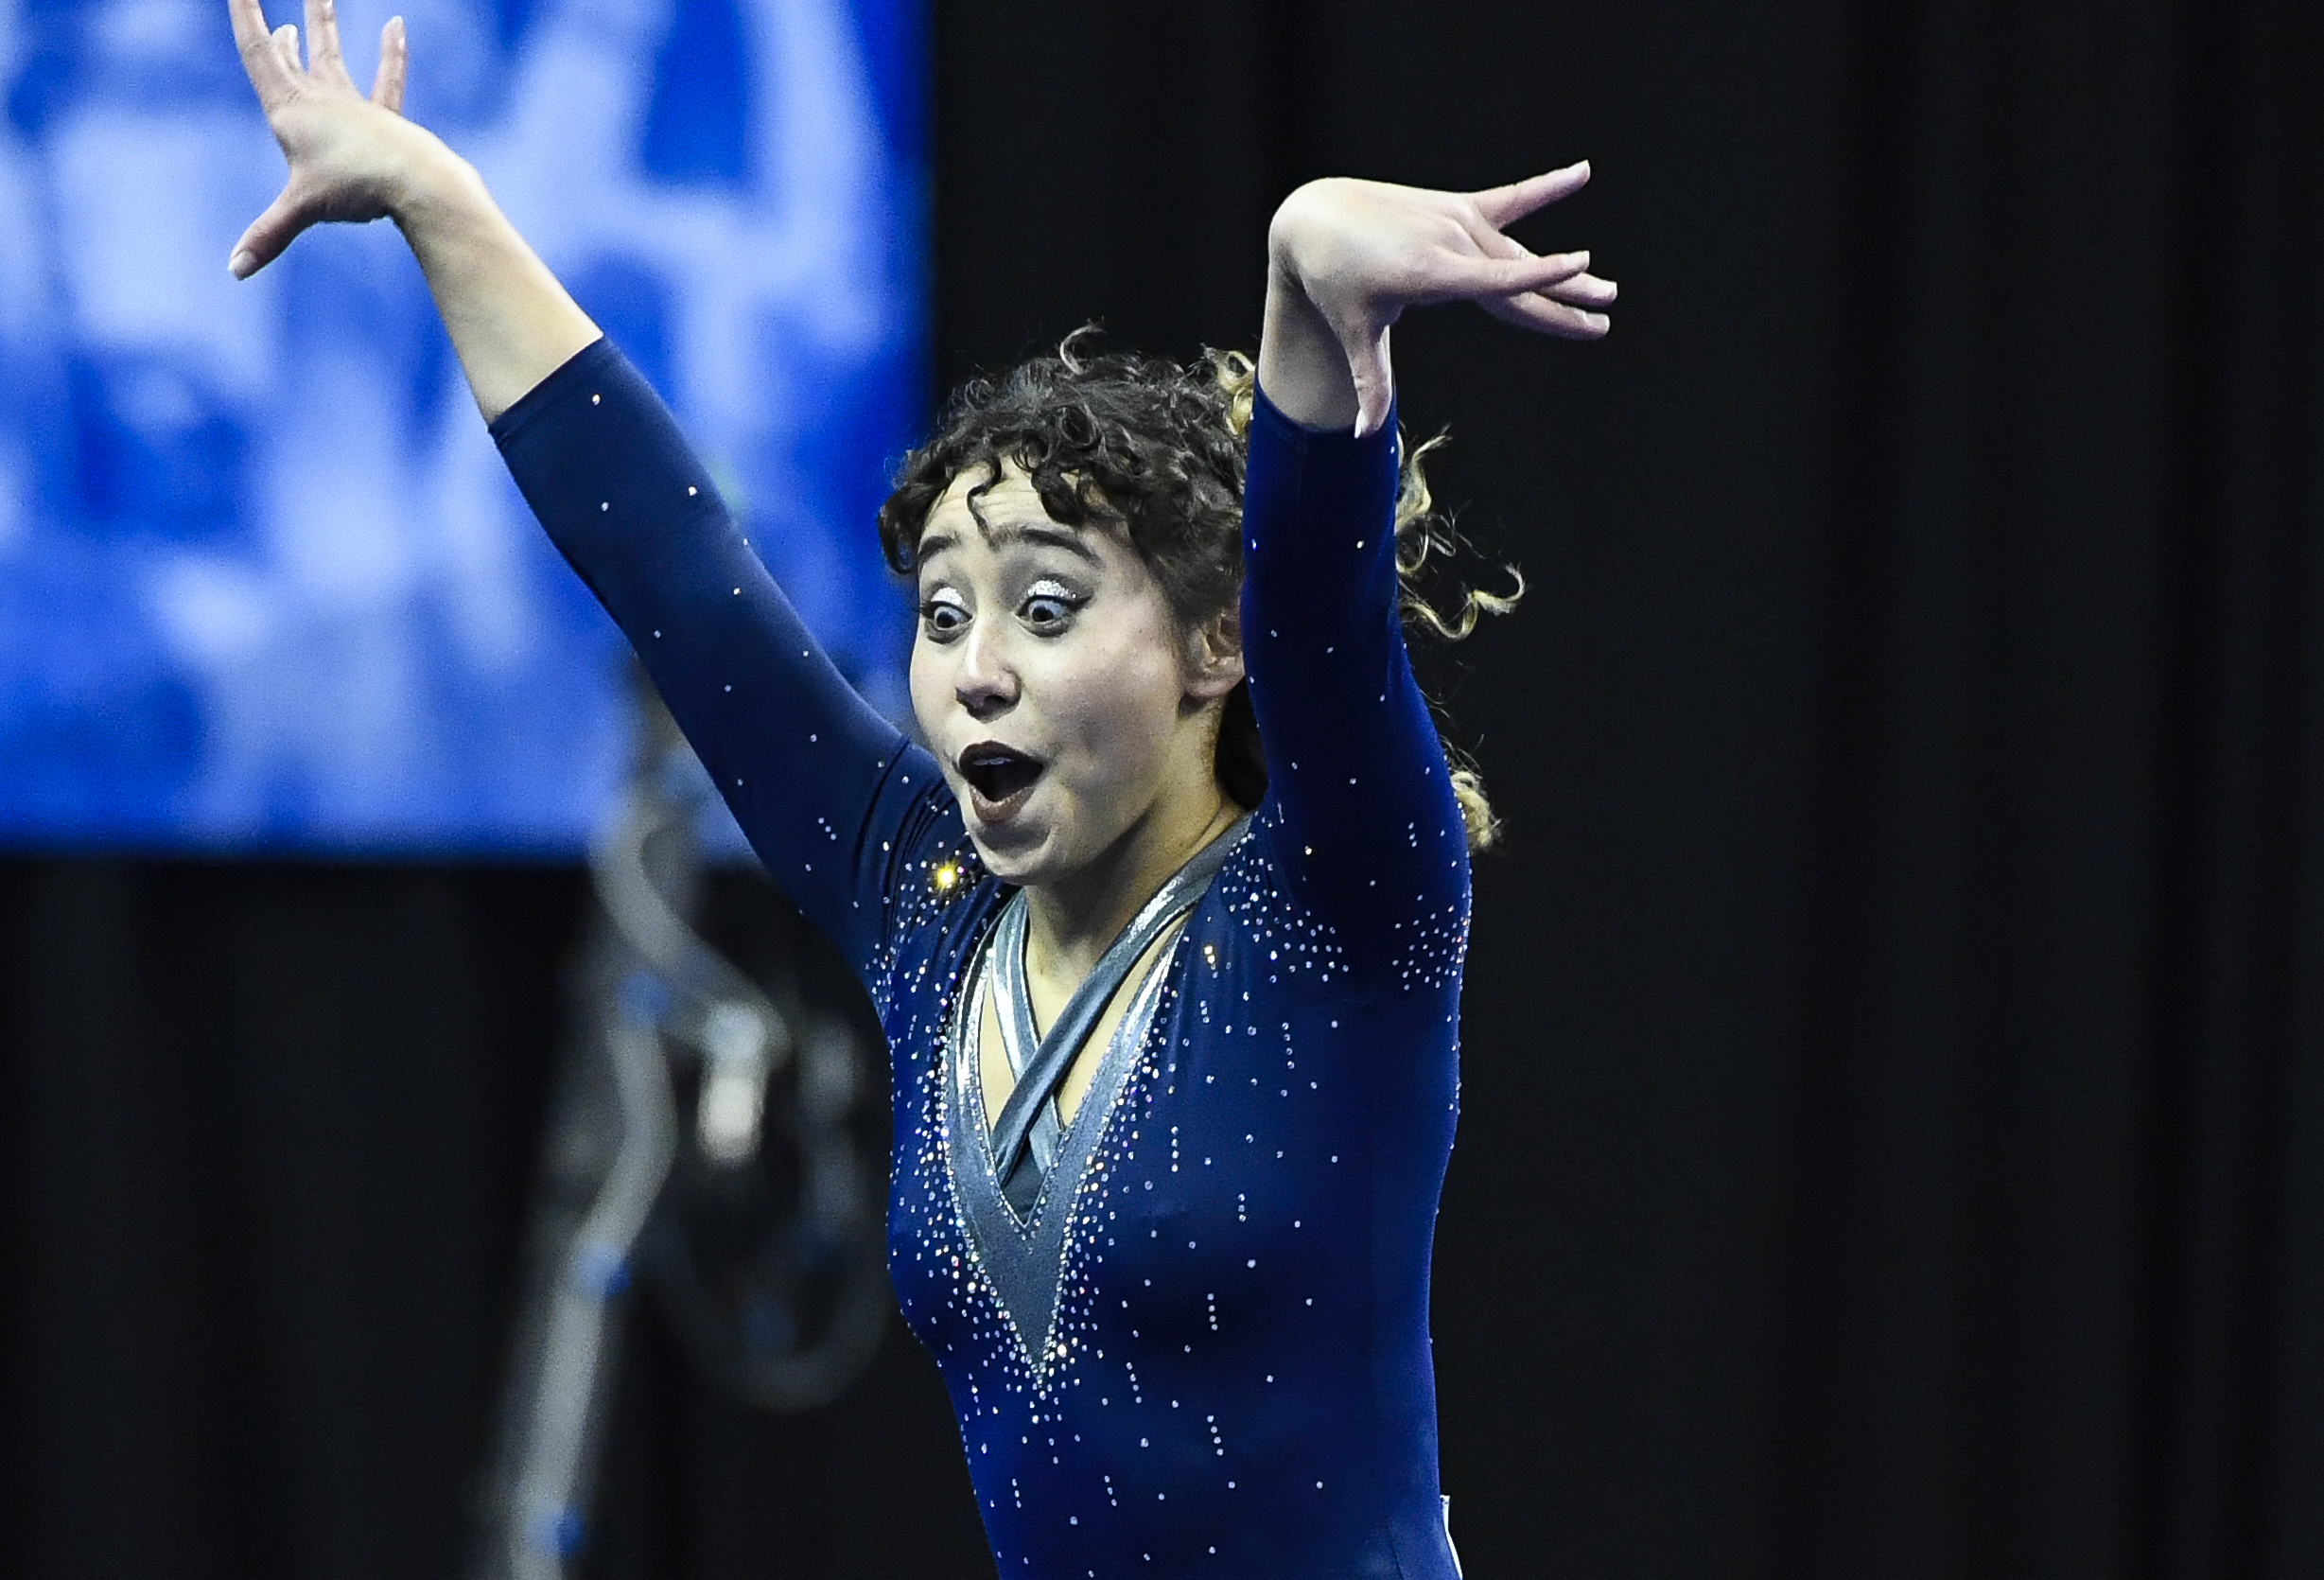 ST LOUIS, MO - APRIL 21: Katelyn Ohashi #563 of UCLA performs a floor routine during the Division I Women's Gymnastics Championship held at Chaifetz Arena on April 21, 2018 in St Louis, Missouri. UCLA won with a score of 197.5625 points. (Photo by Tim Nwachukwu/NCAA Photos via Getty Images)